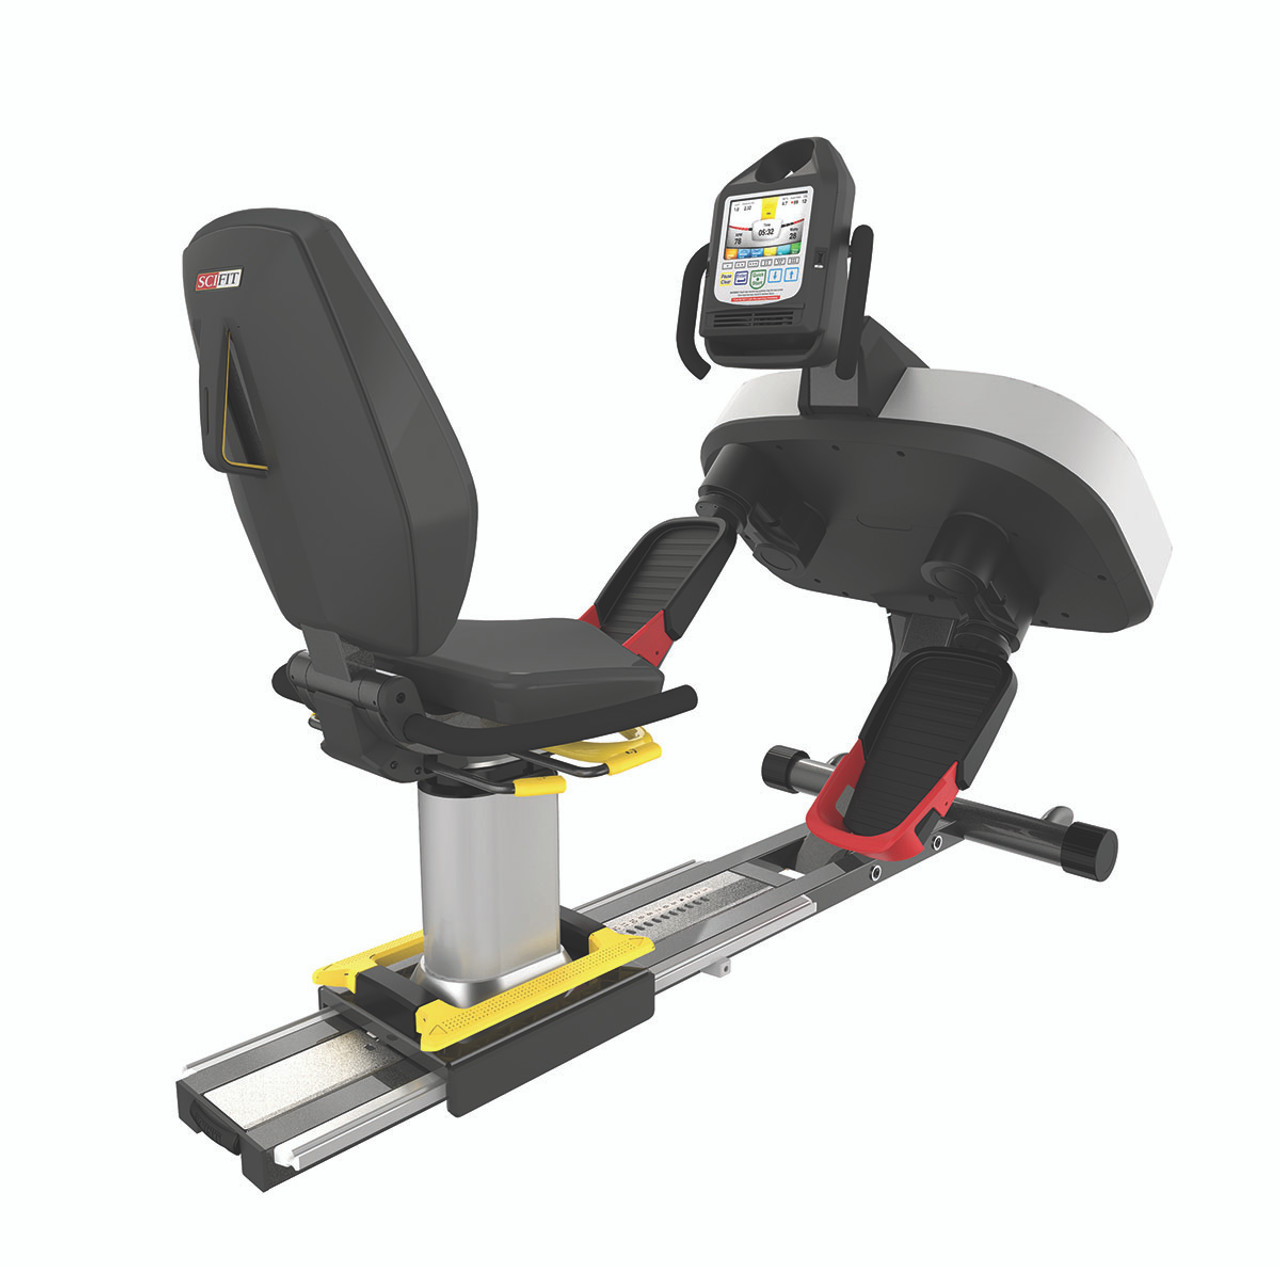 SciFit Latitude Lateral Stability Trainer with Bariatric Seat